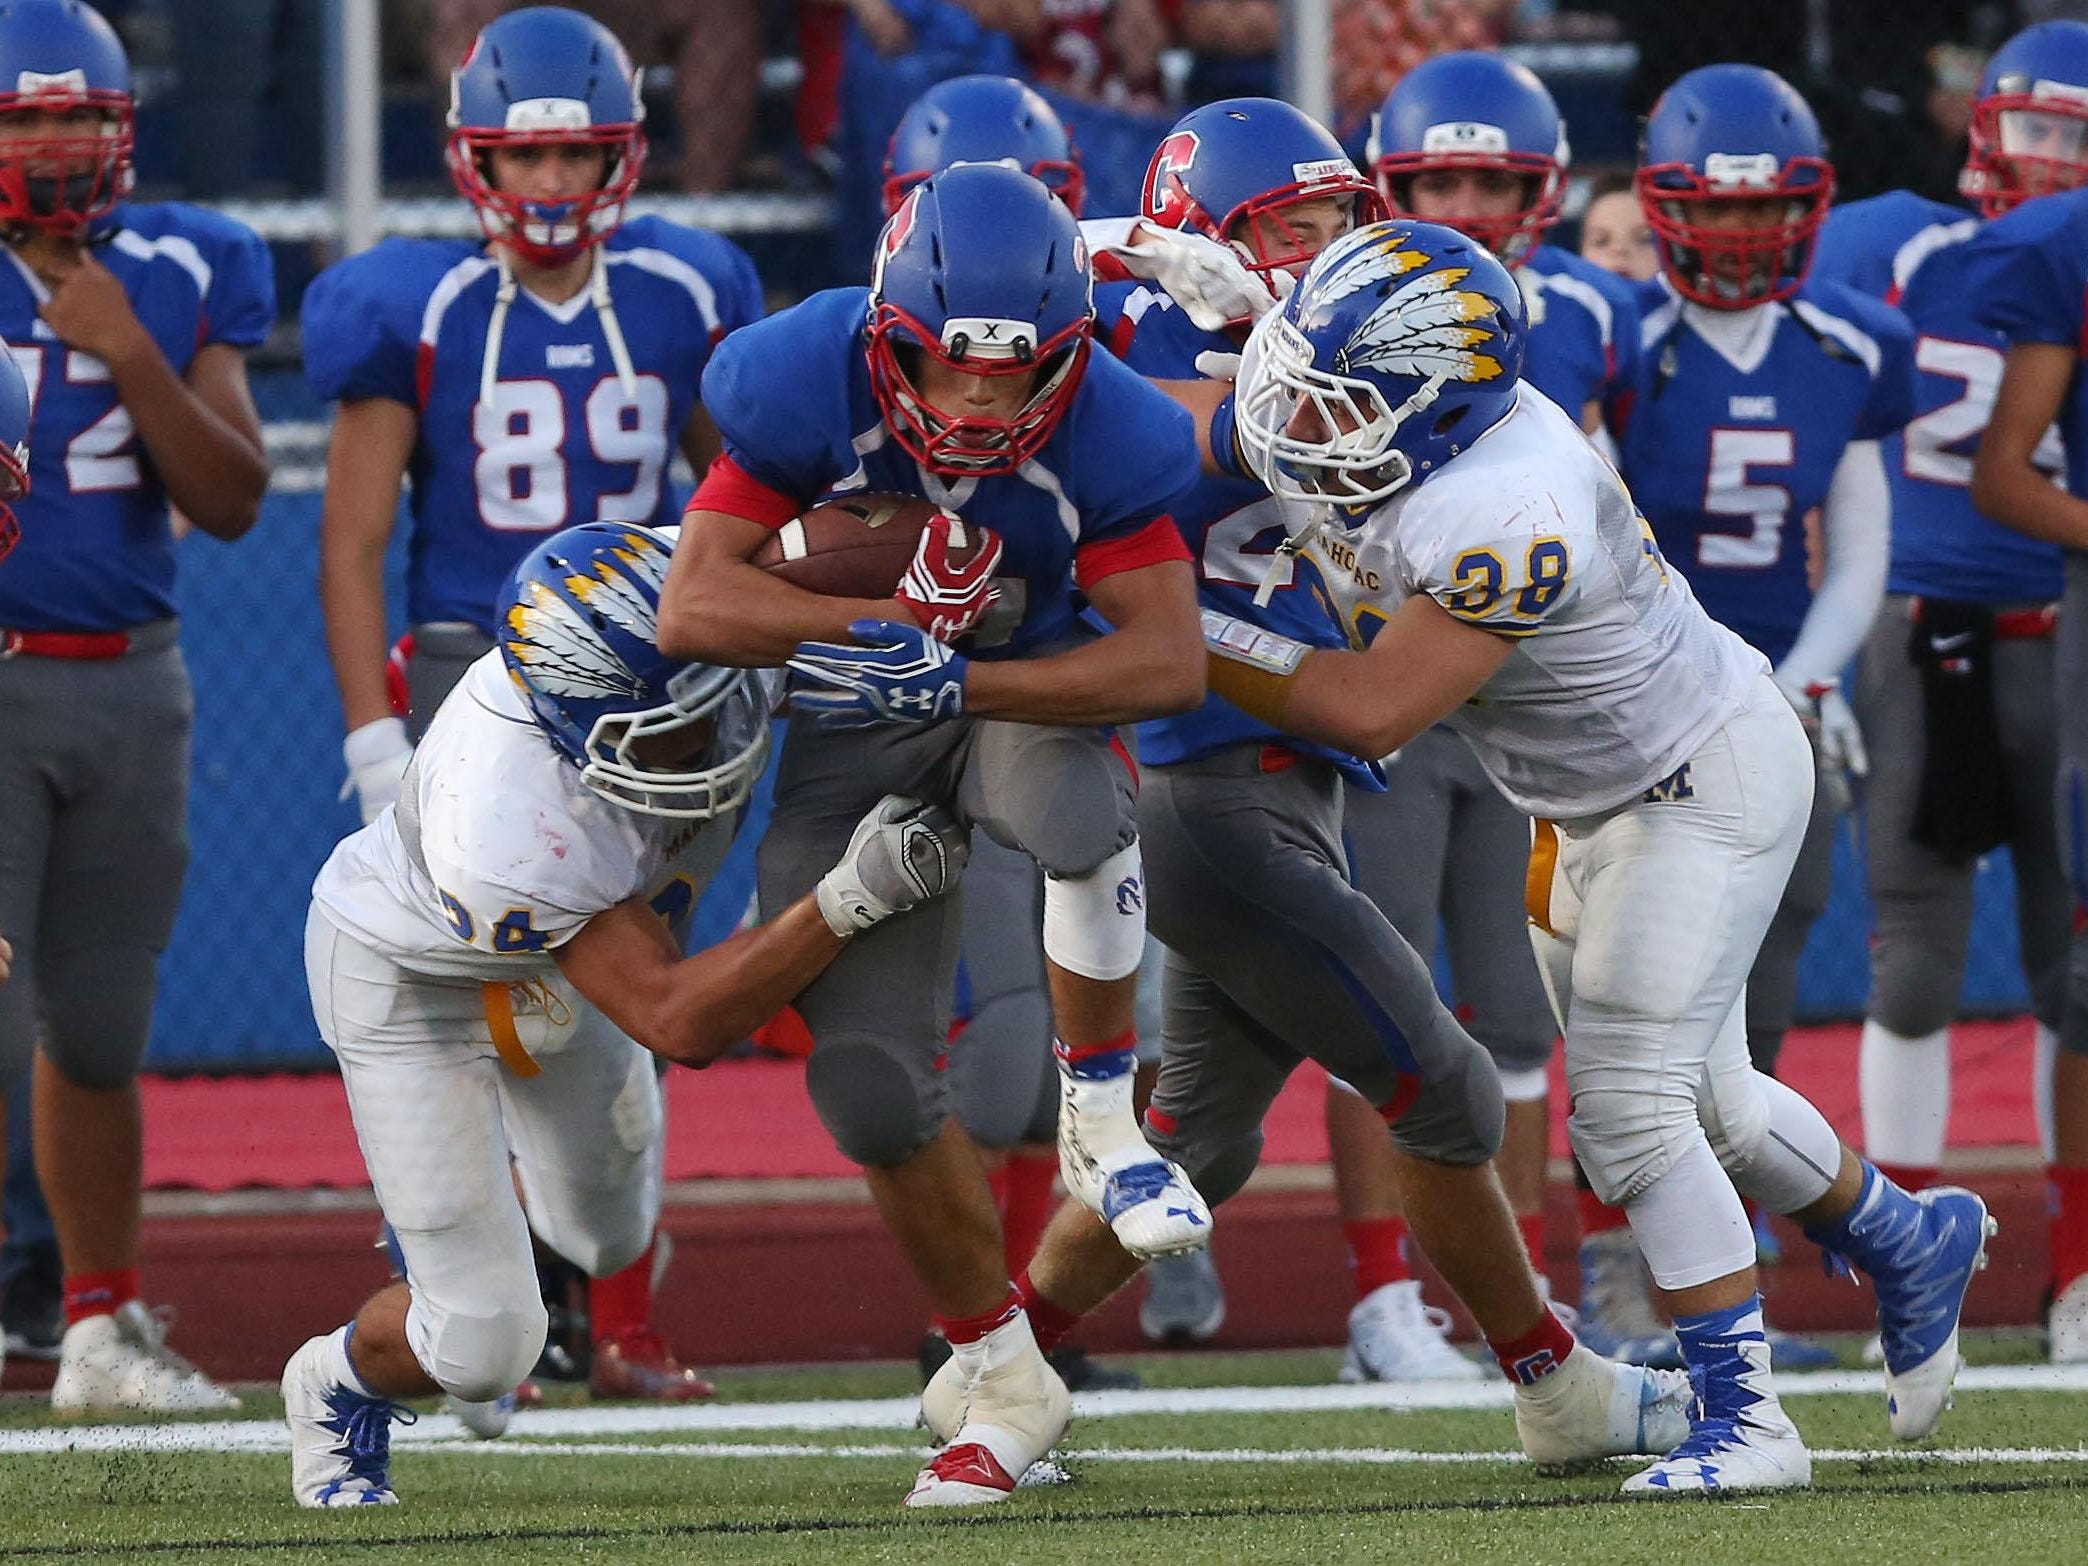 Carmel's David Vega tries to break away from Mahopac's Robert Hoyt, left, on a first-half run during Friday's game at Carmel High School.